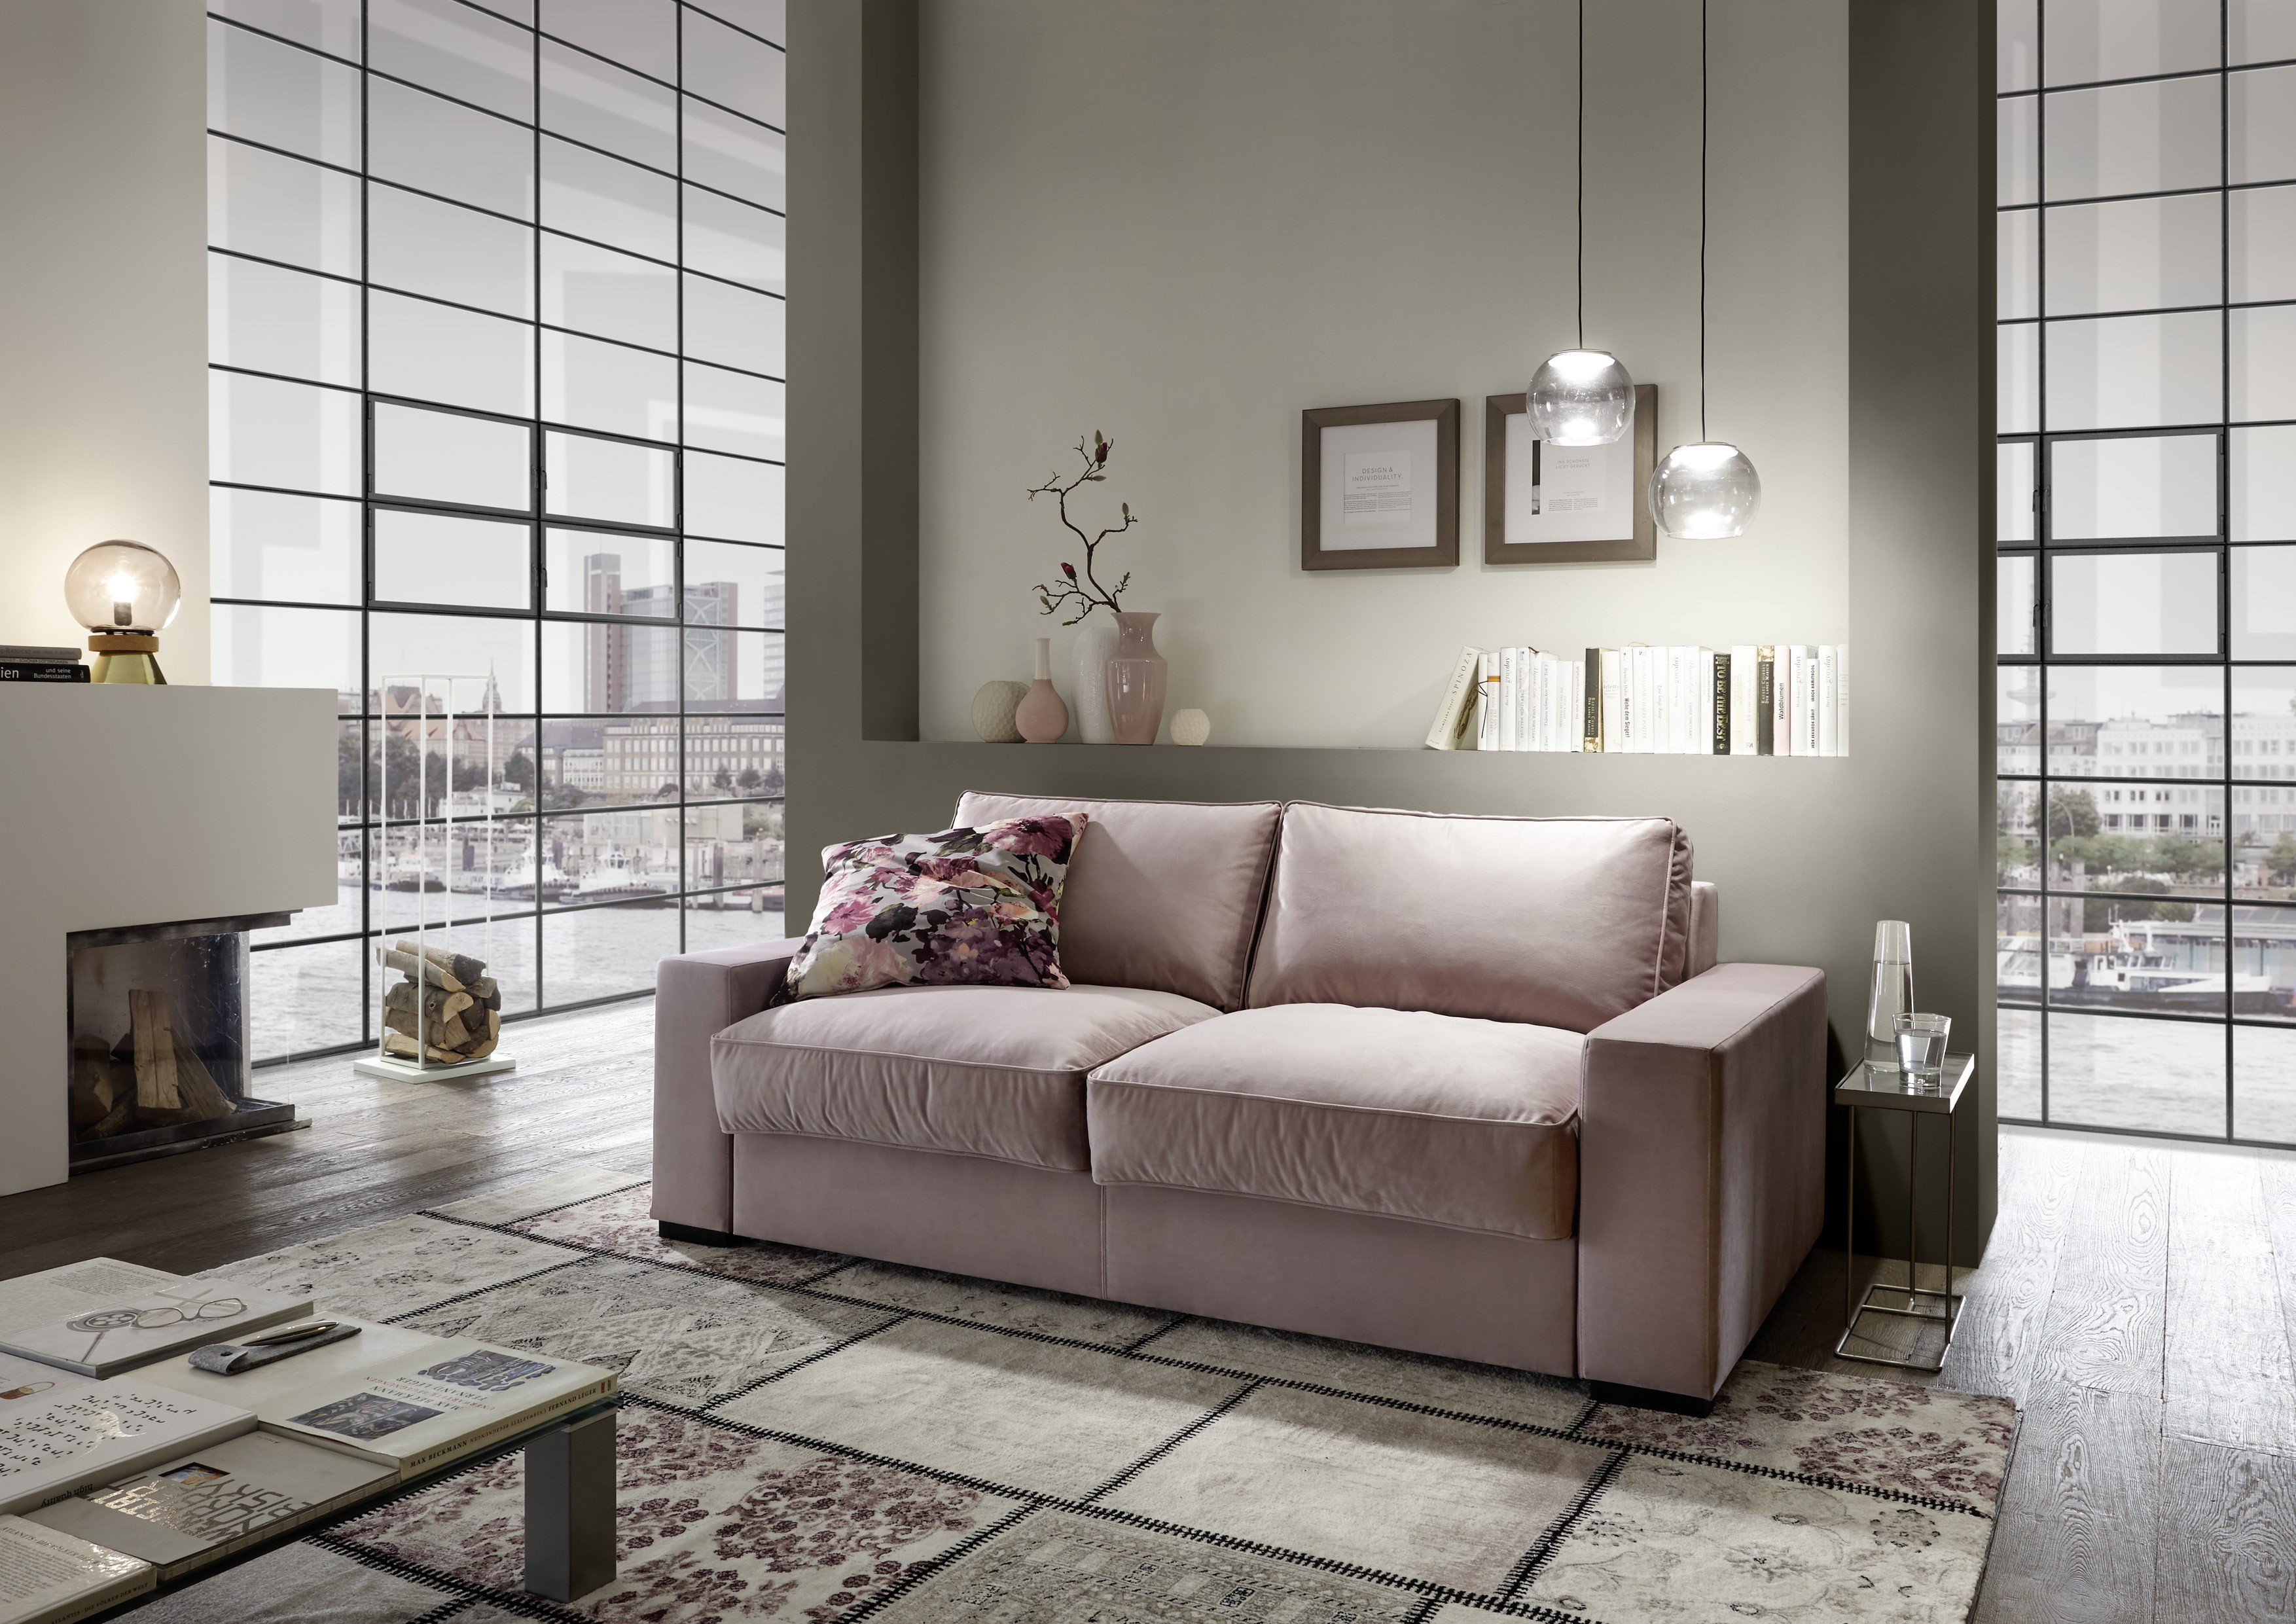 nehl wohnideen koast lounge faltbett in rose m bel letz. Black Bedroom Furniture Sets. Home Design Ideas